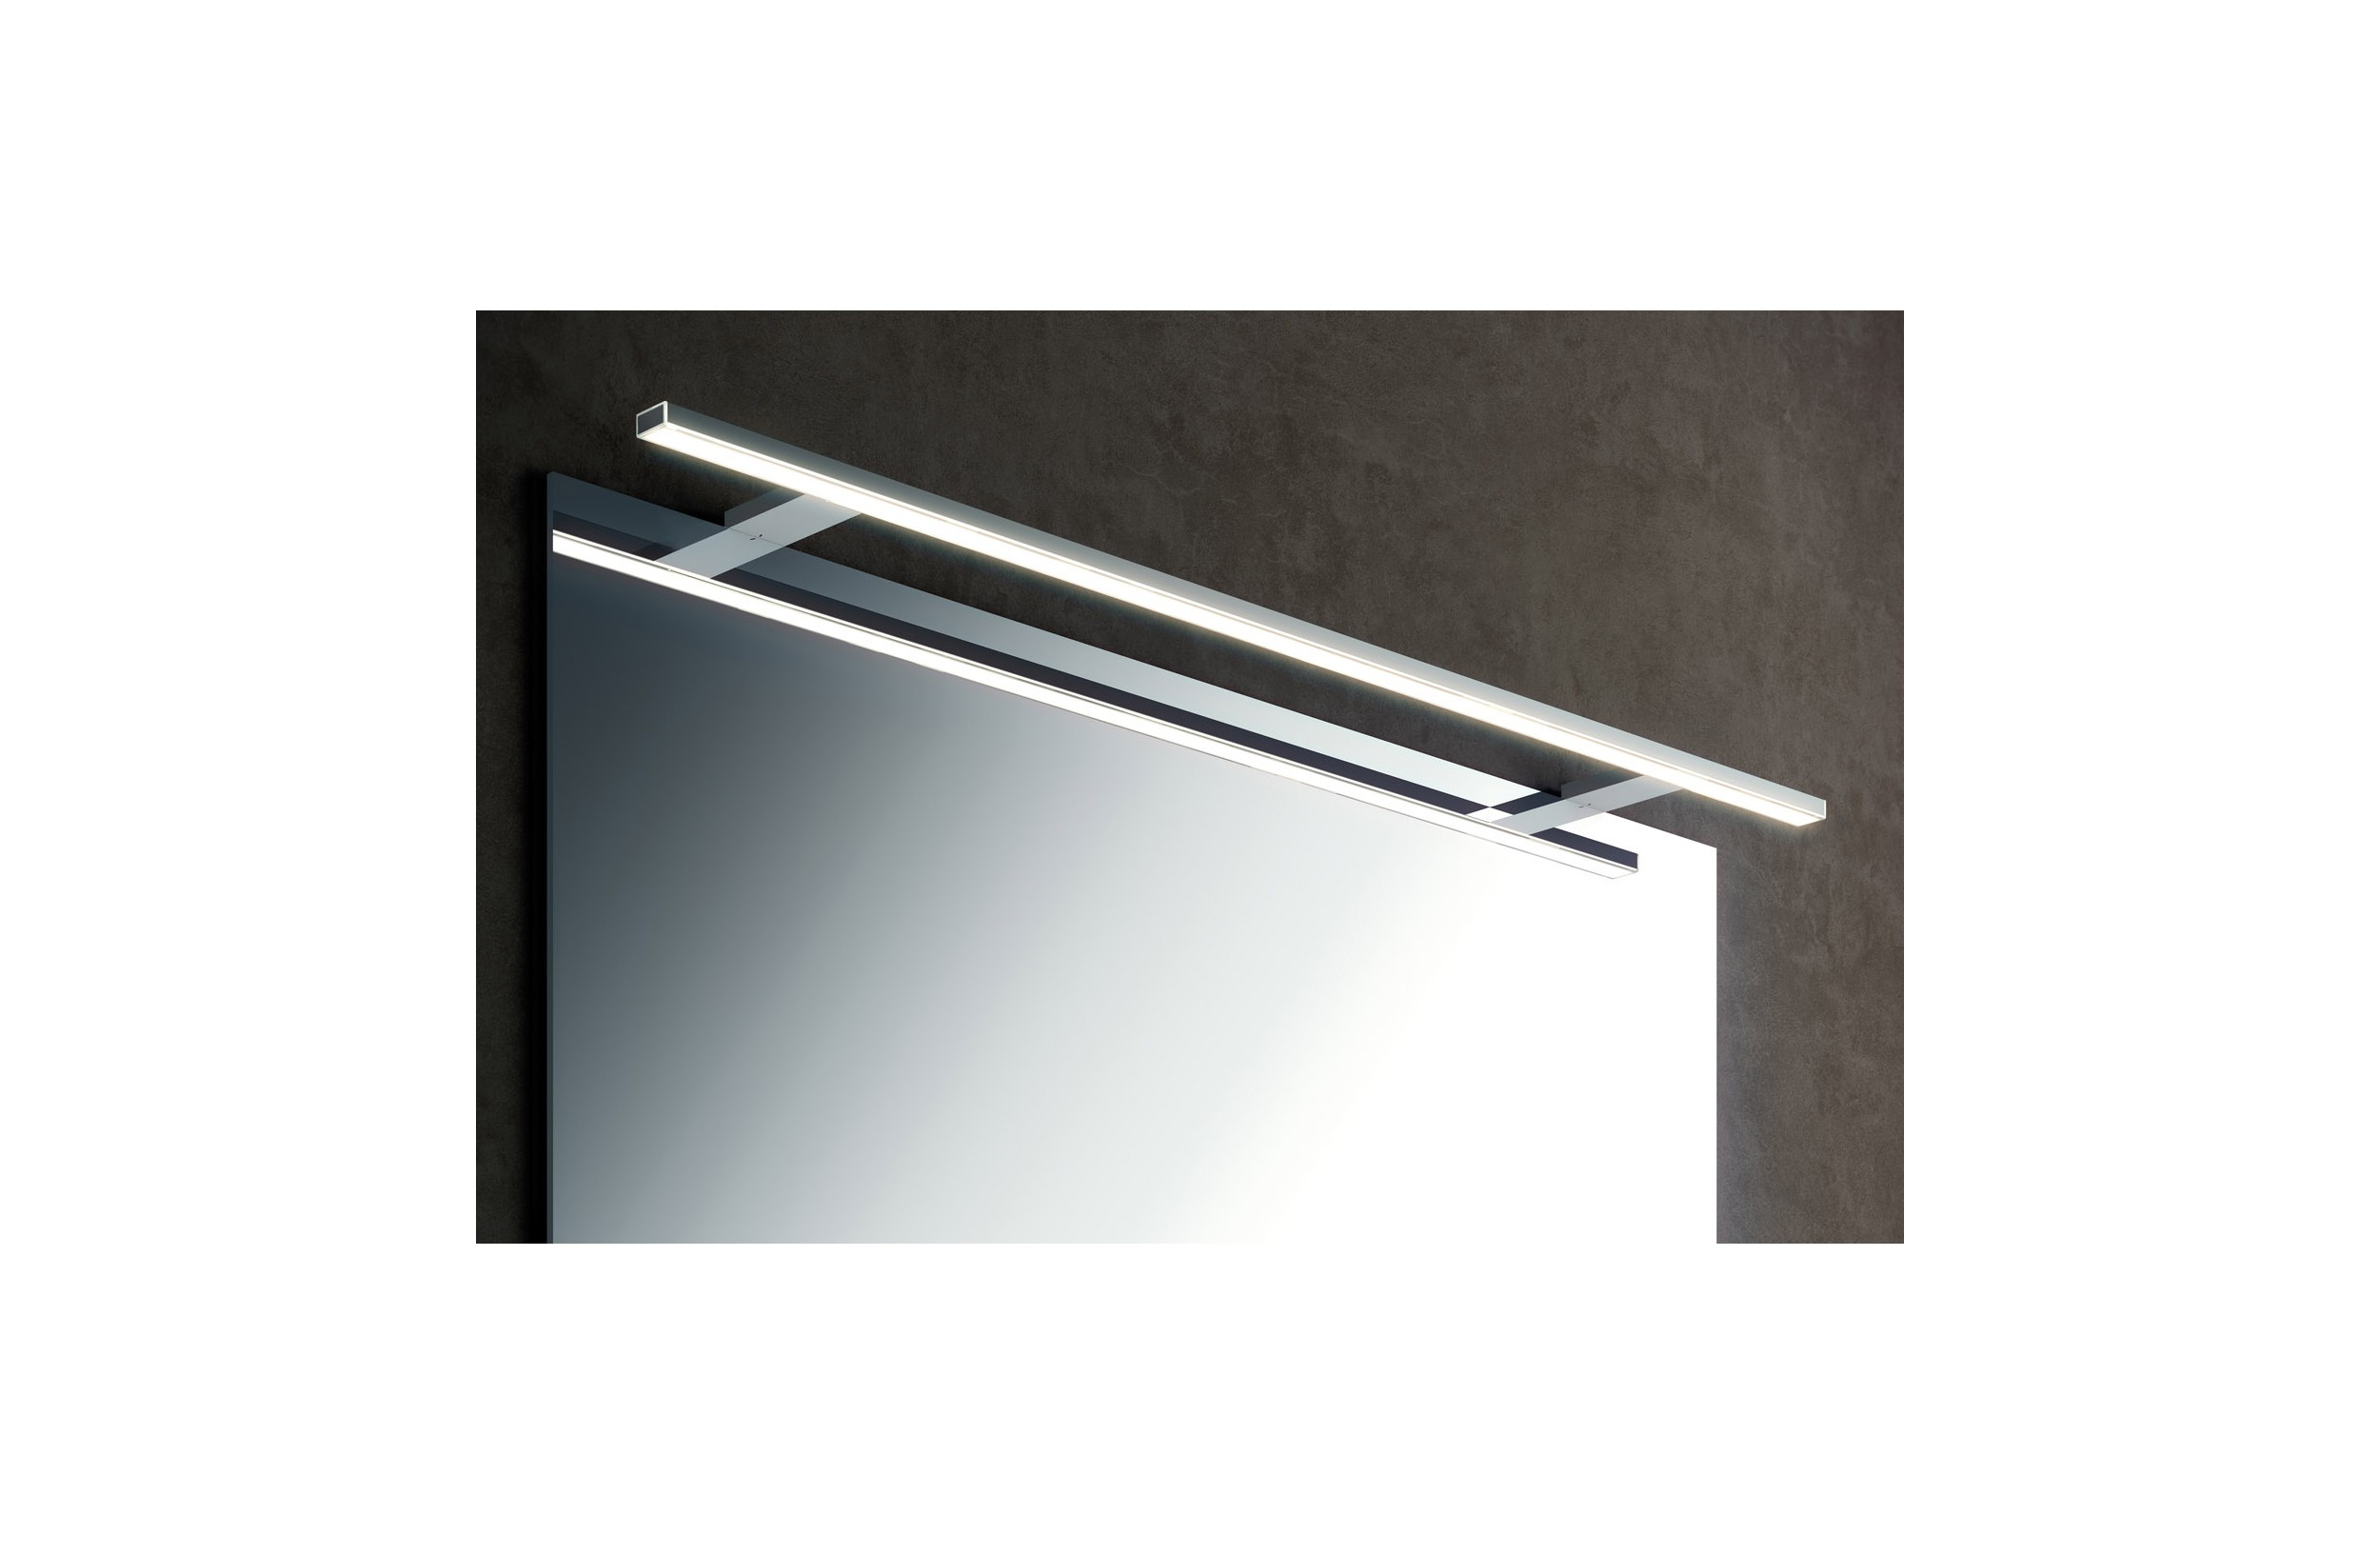 Aplique Baño Aplique Led De Pared Baño Light 100 Cm Cromo Cosmic